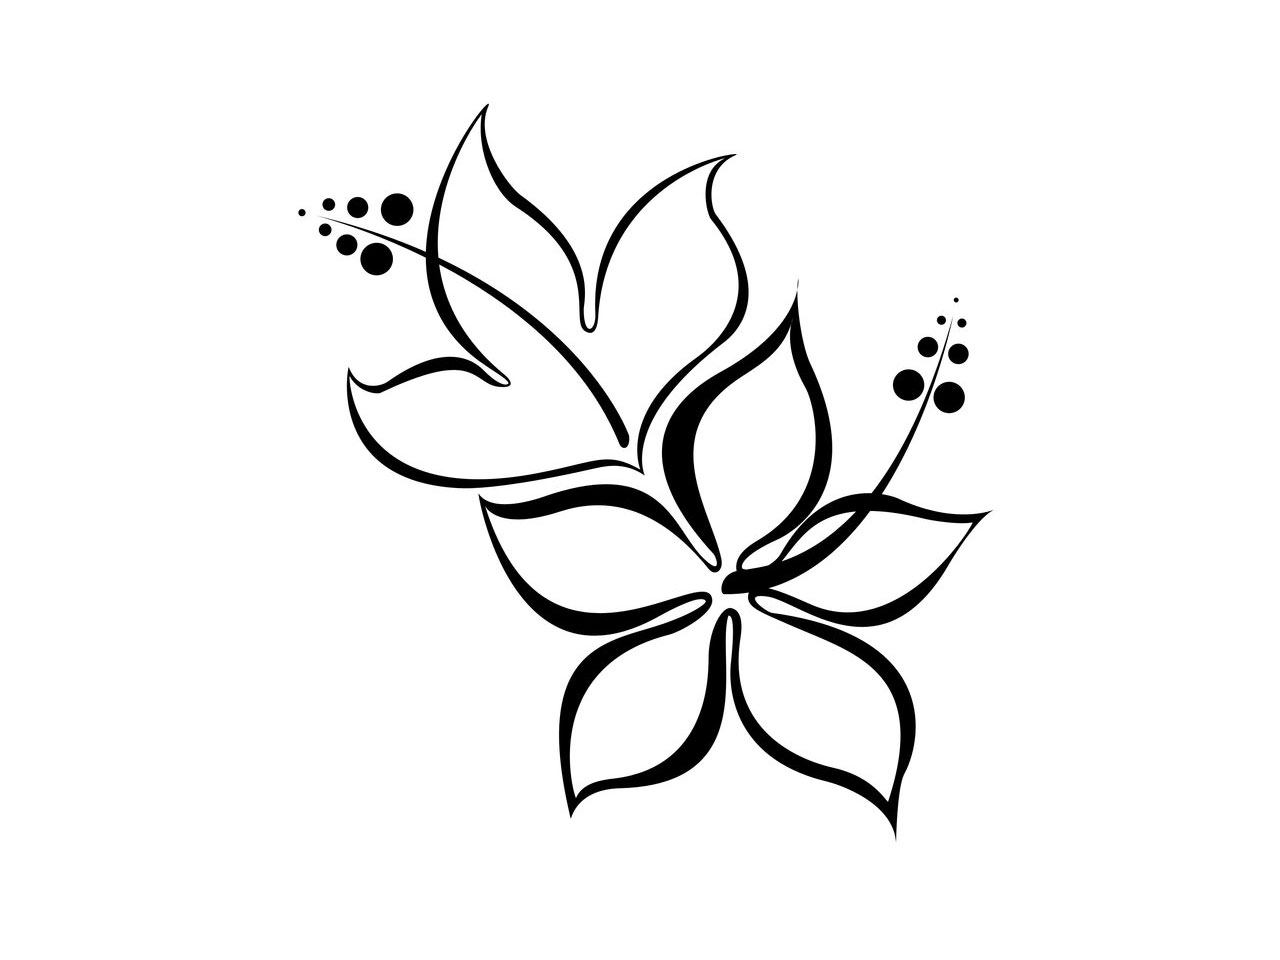 Line Drawing Flower Vector : Flower line drawing vector at getdrawings free for